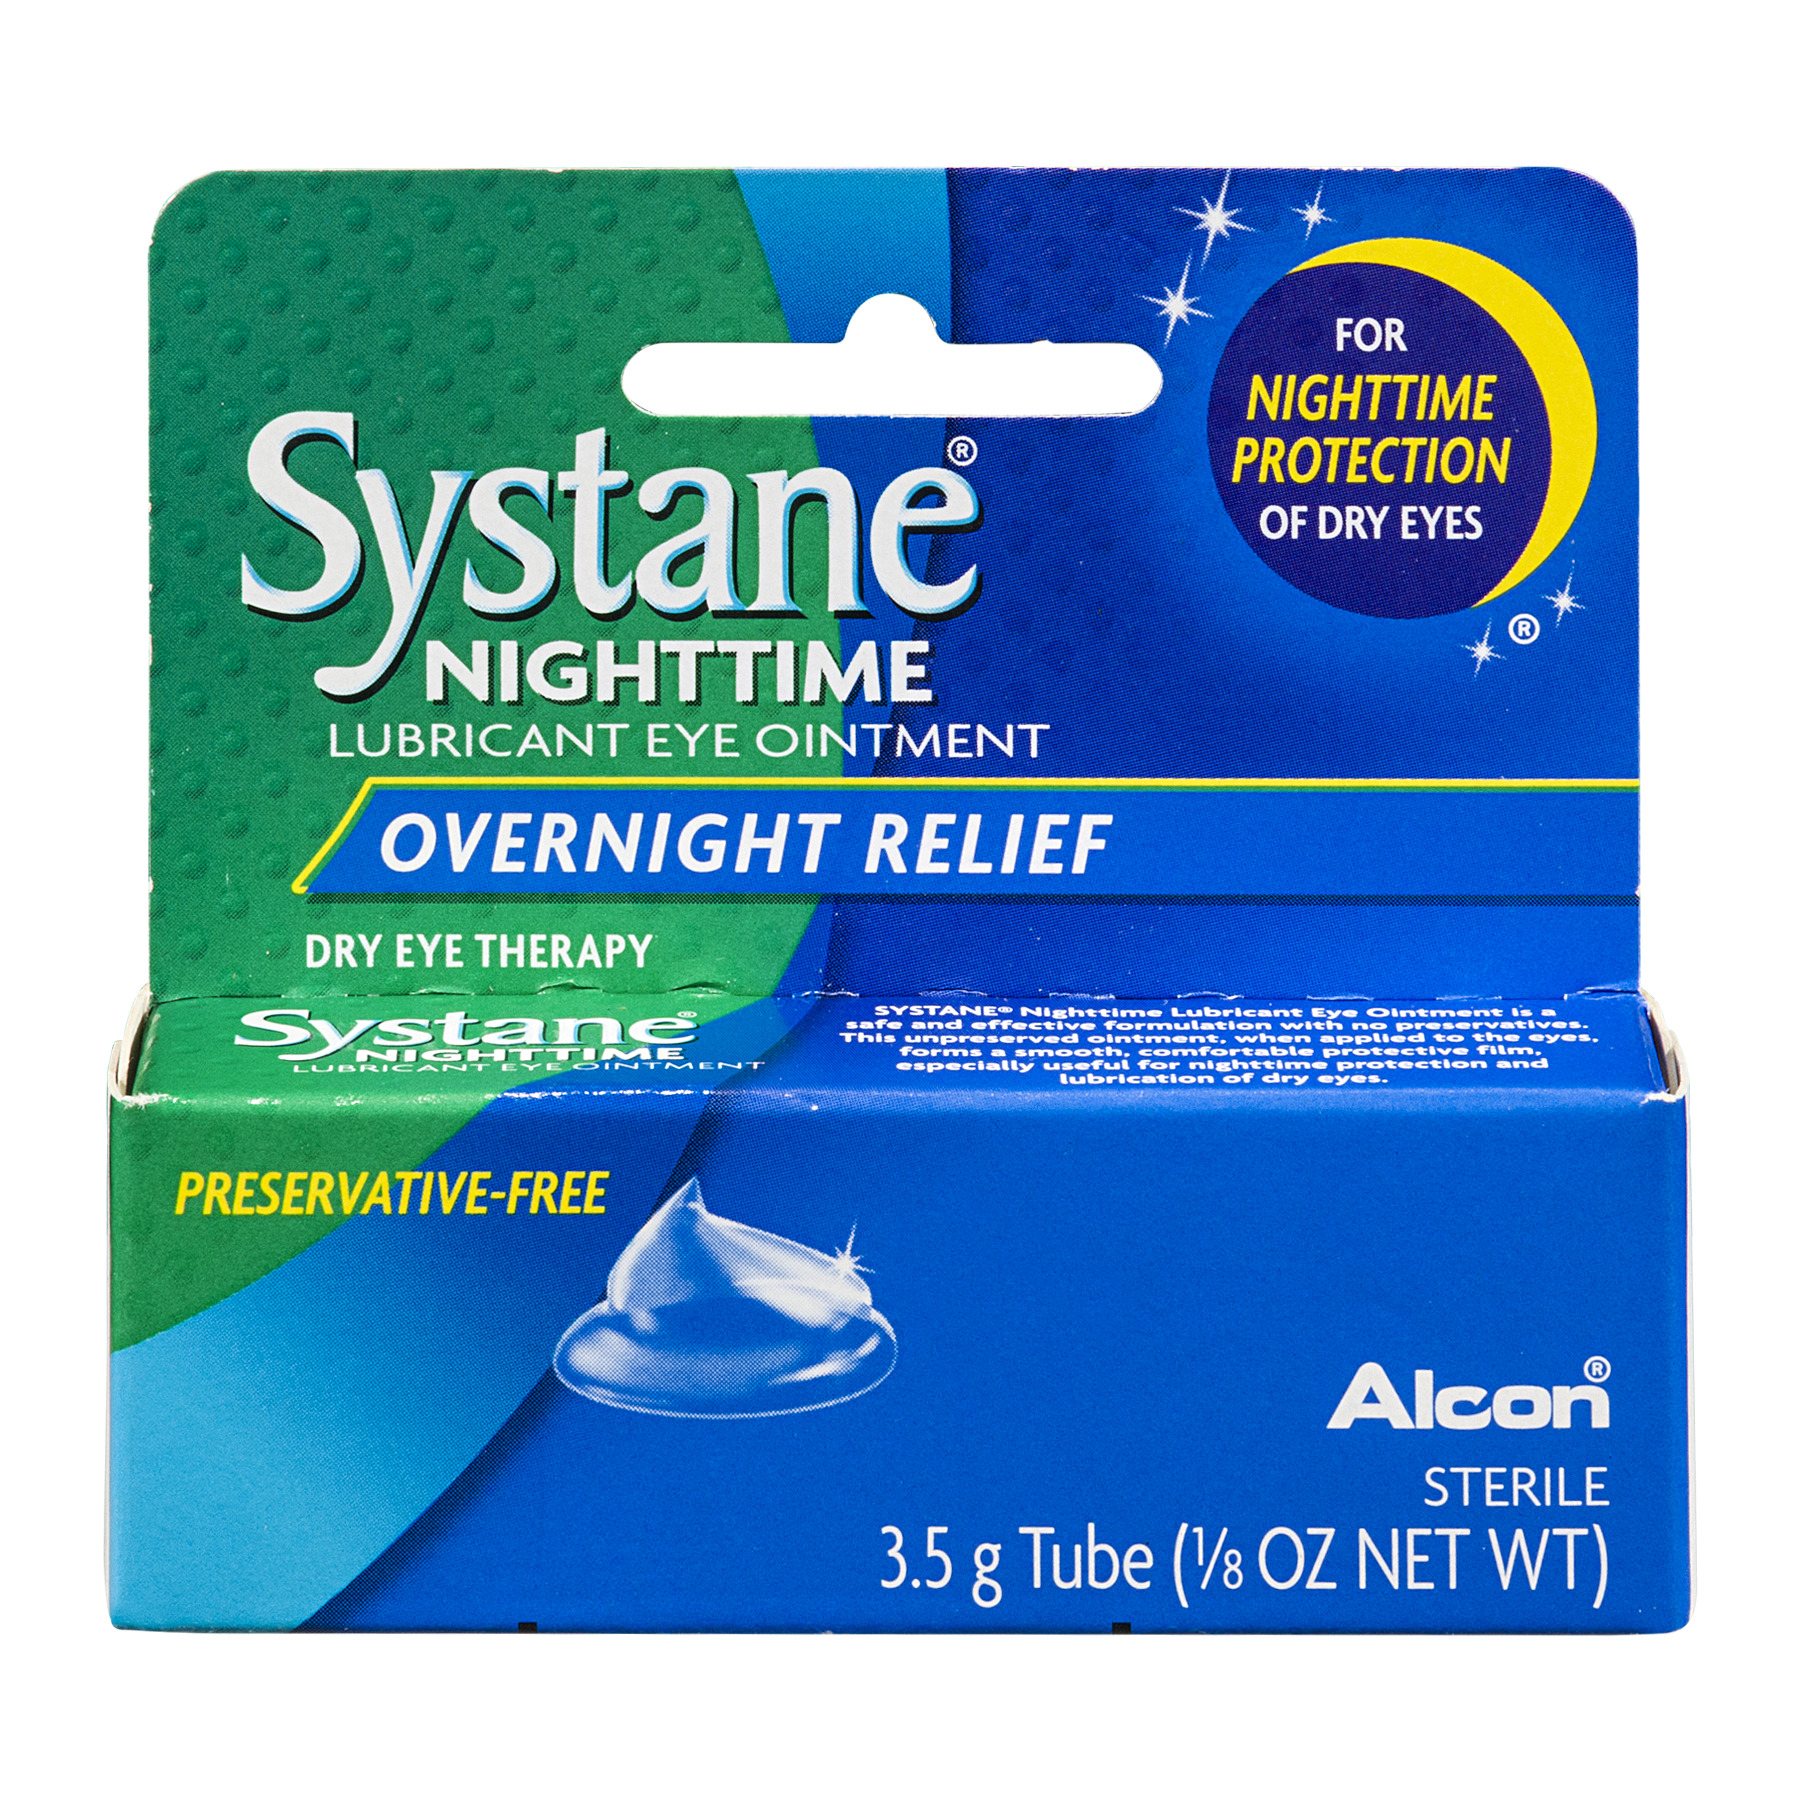 Systane Nighttime Lubricant Eye Ointment Overnight Relief, 0.125 FL OZ